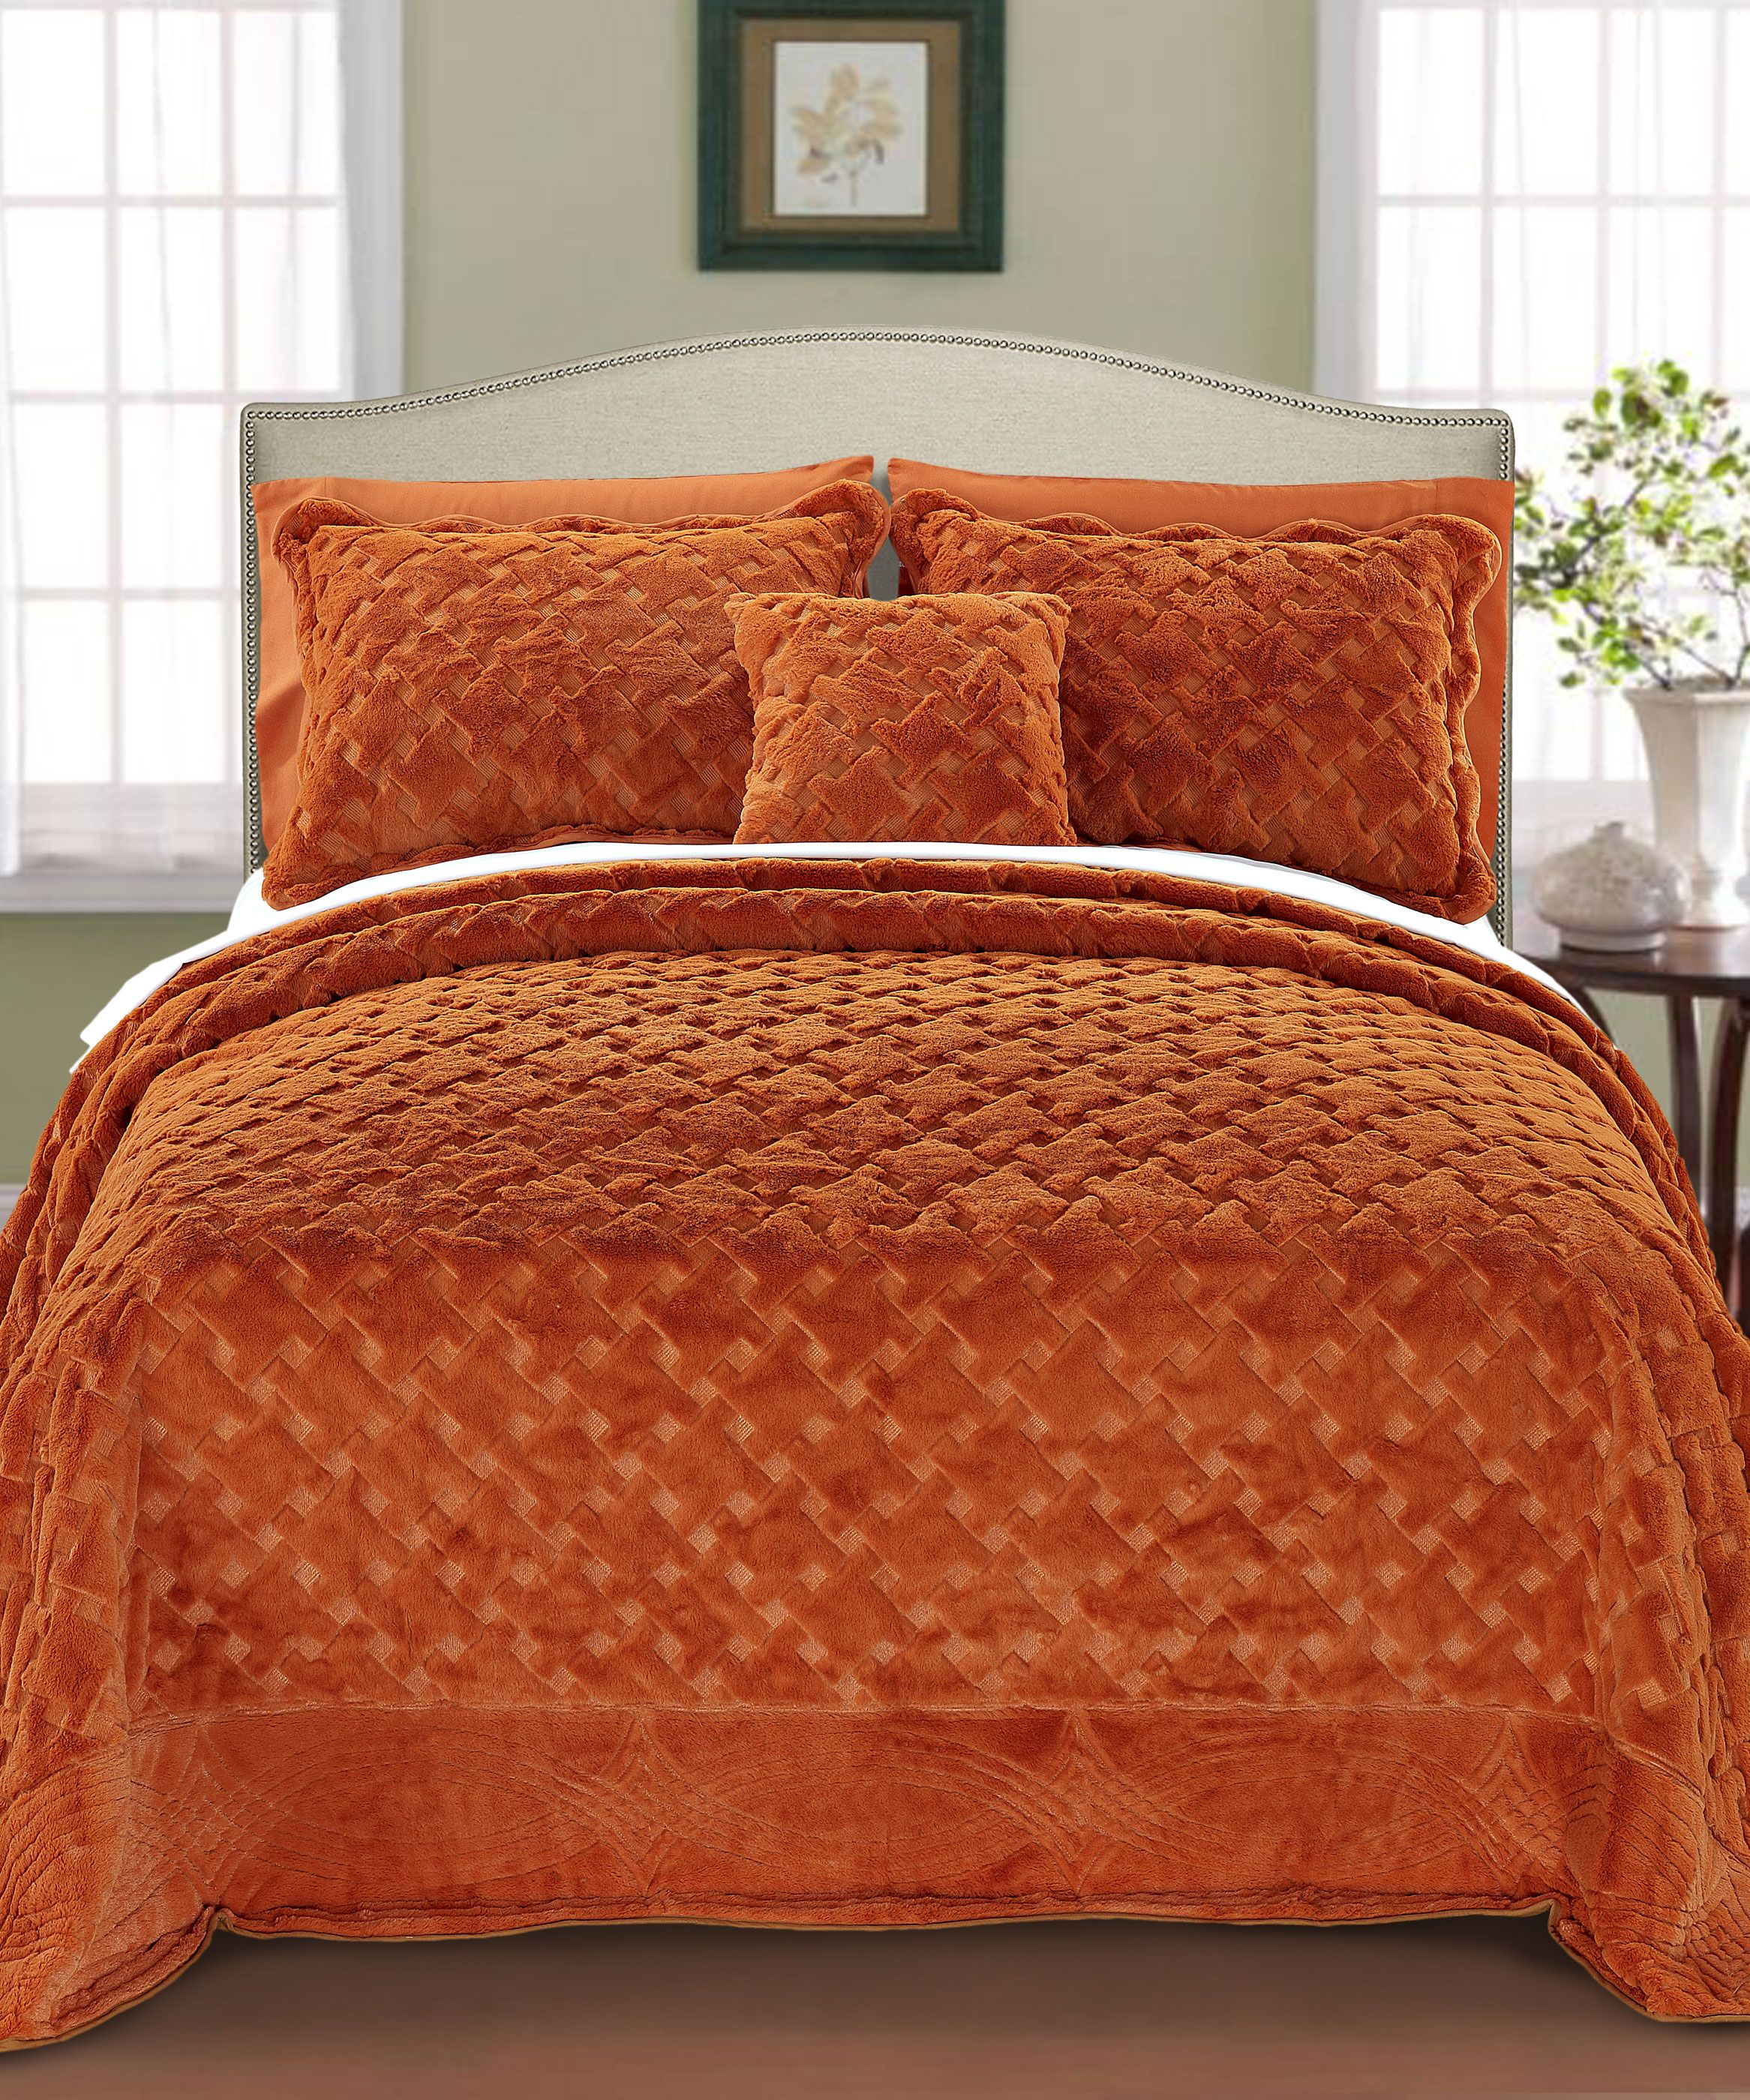 ip bedding mixed walmart king com comforter true timber green pine orange sets set